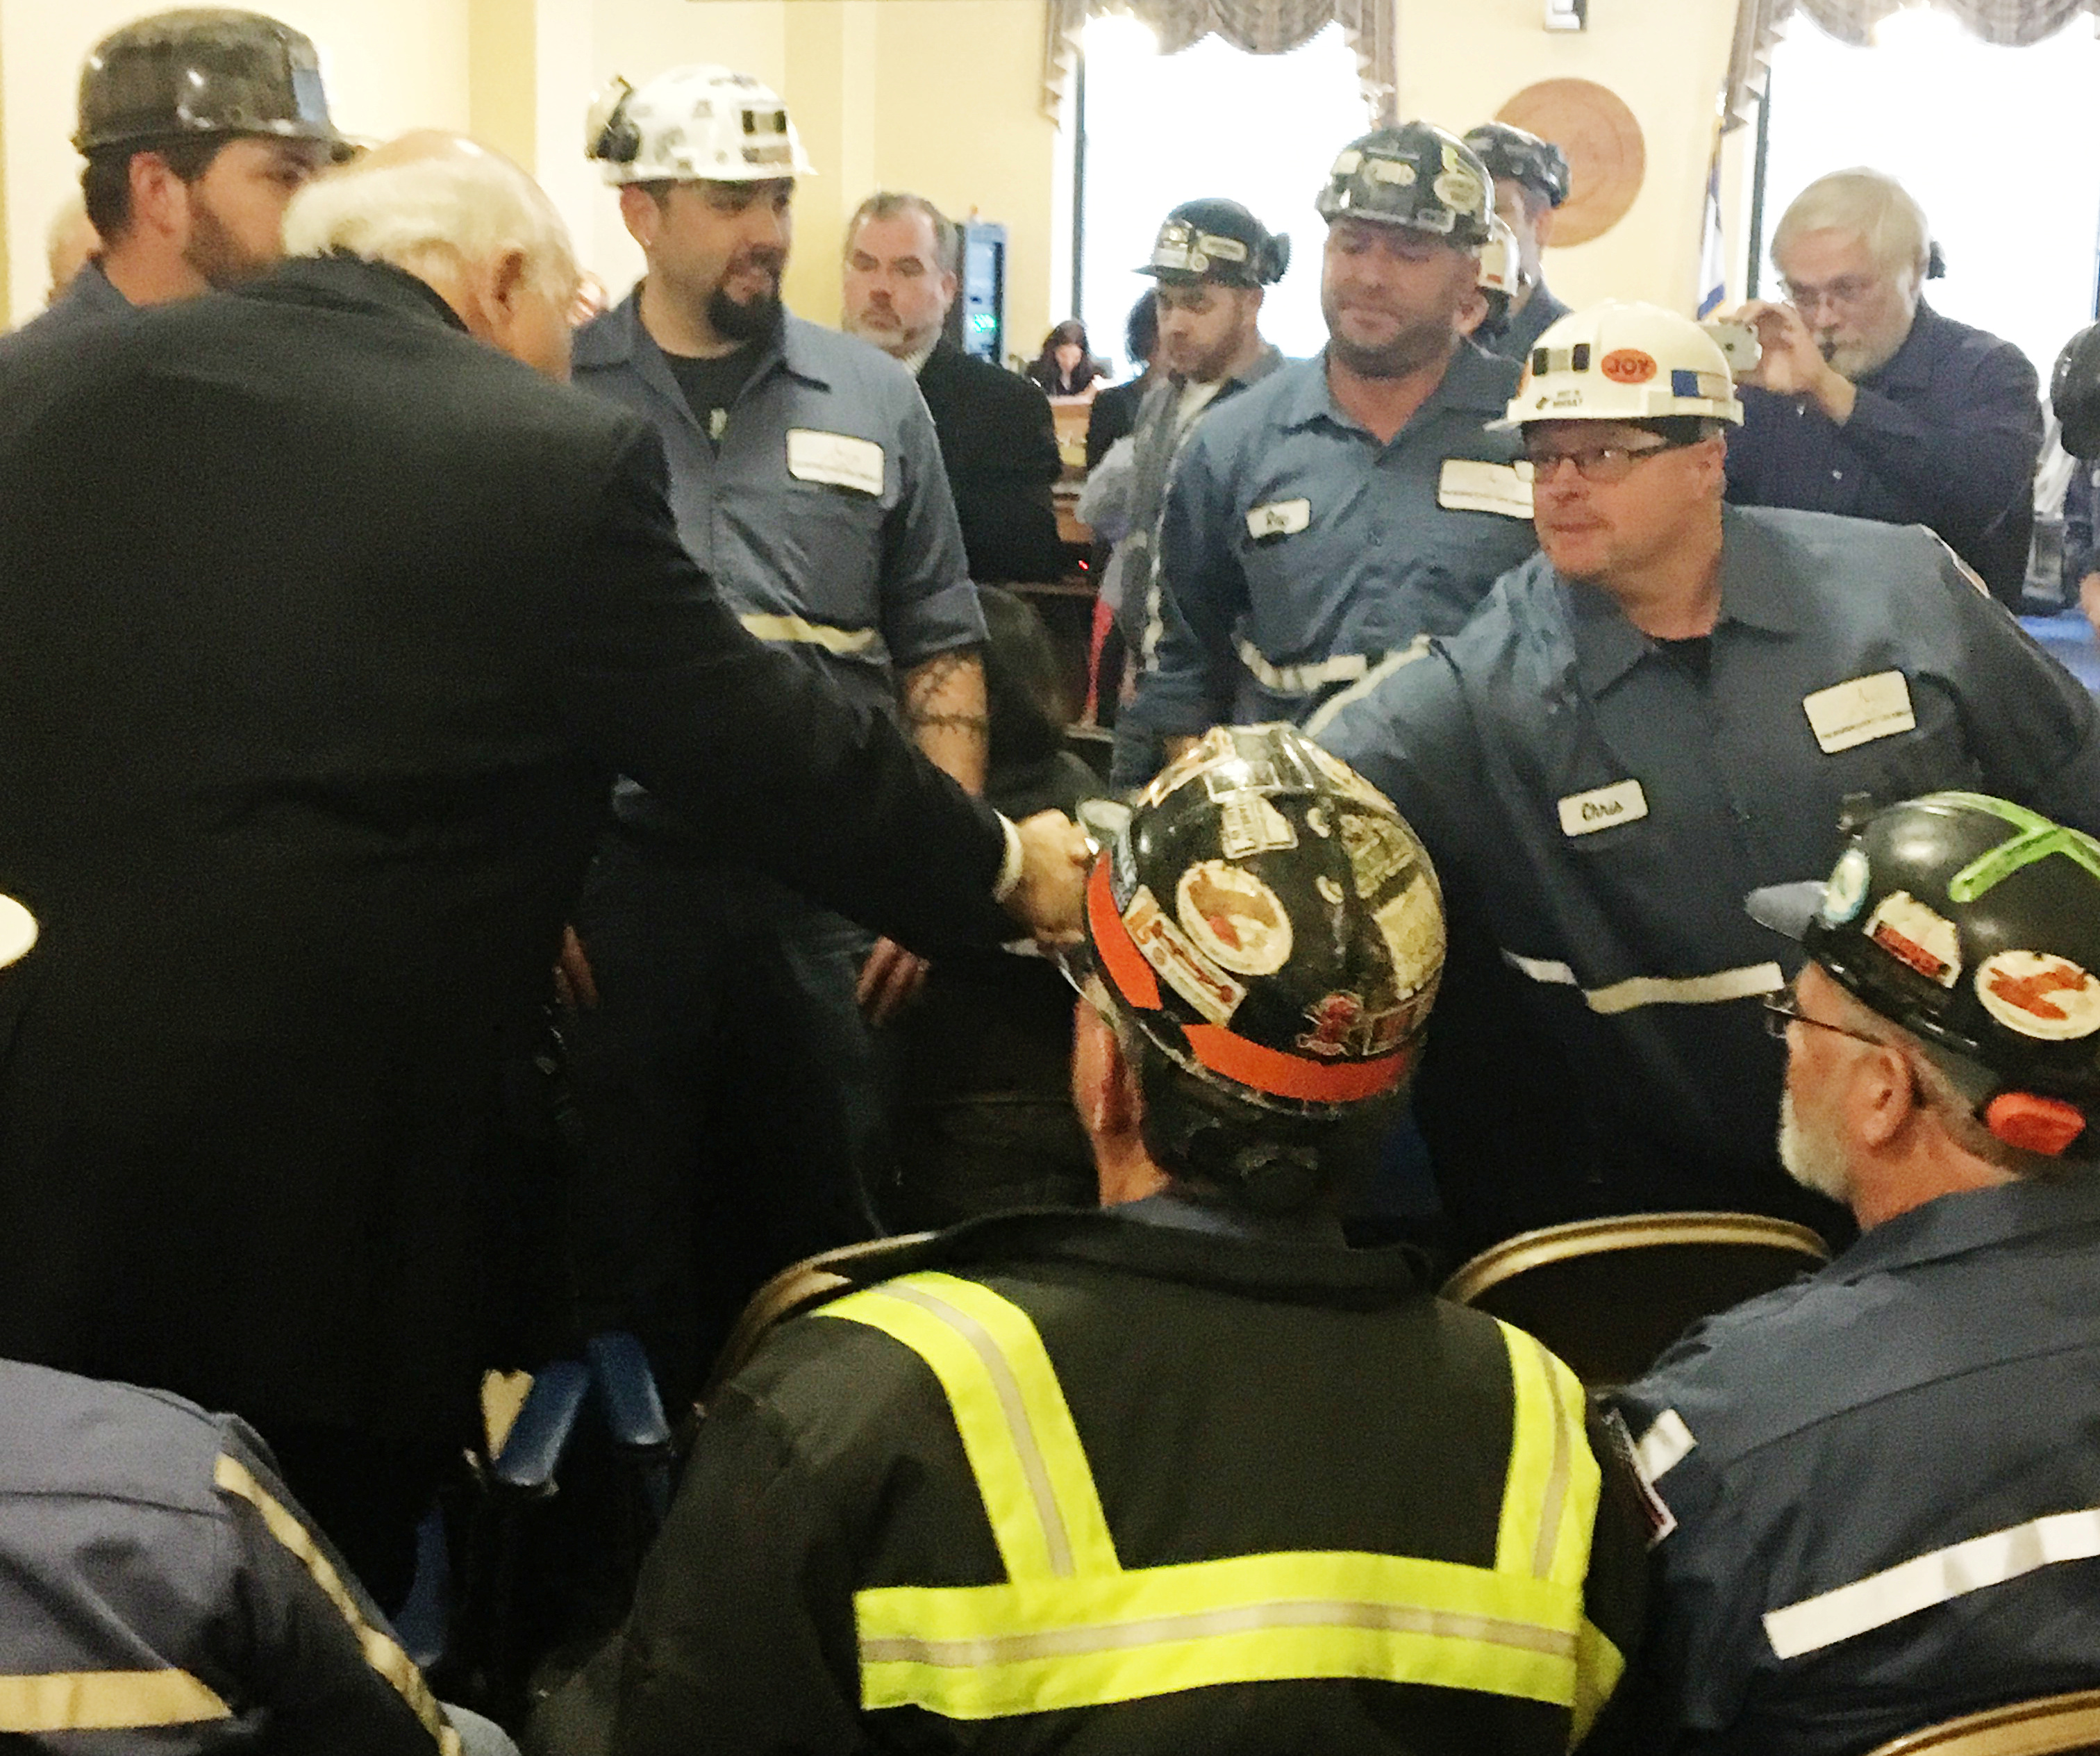 Robert Murray, founder and CEO of Murray Energy greets coal miners at the EPA hearing in Charleston, West Virginia, U.S. November 28, 2017 before speaking to the panel supporting the repeal of the Clean Power Plan. REUTERS/Kara Van Pelt